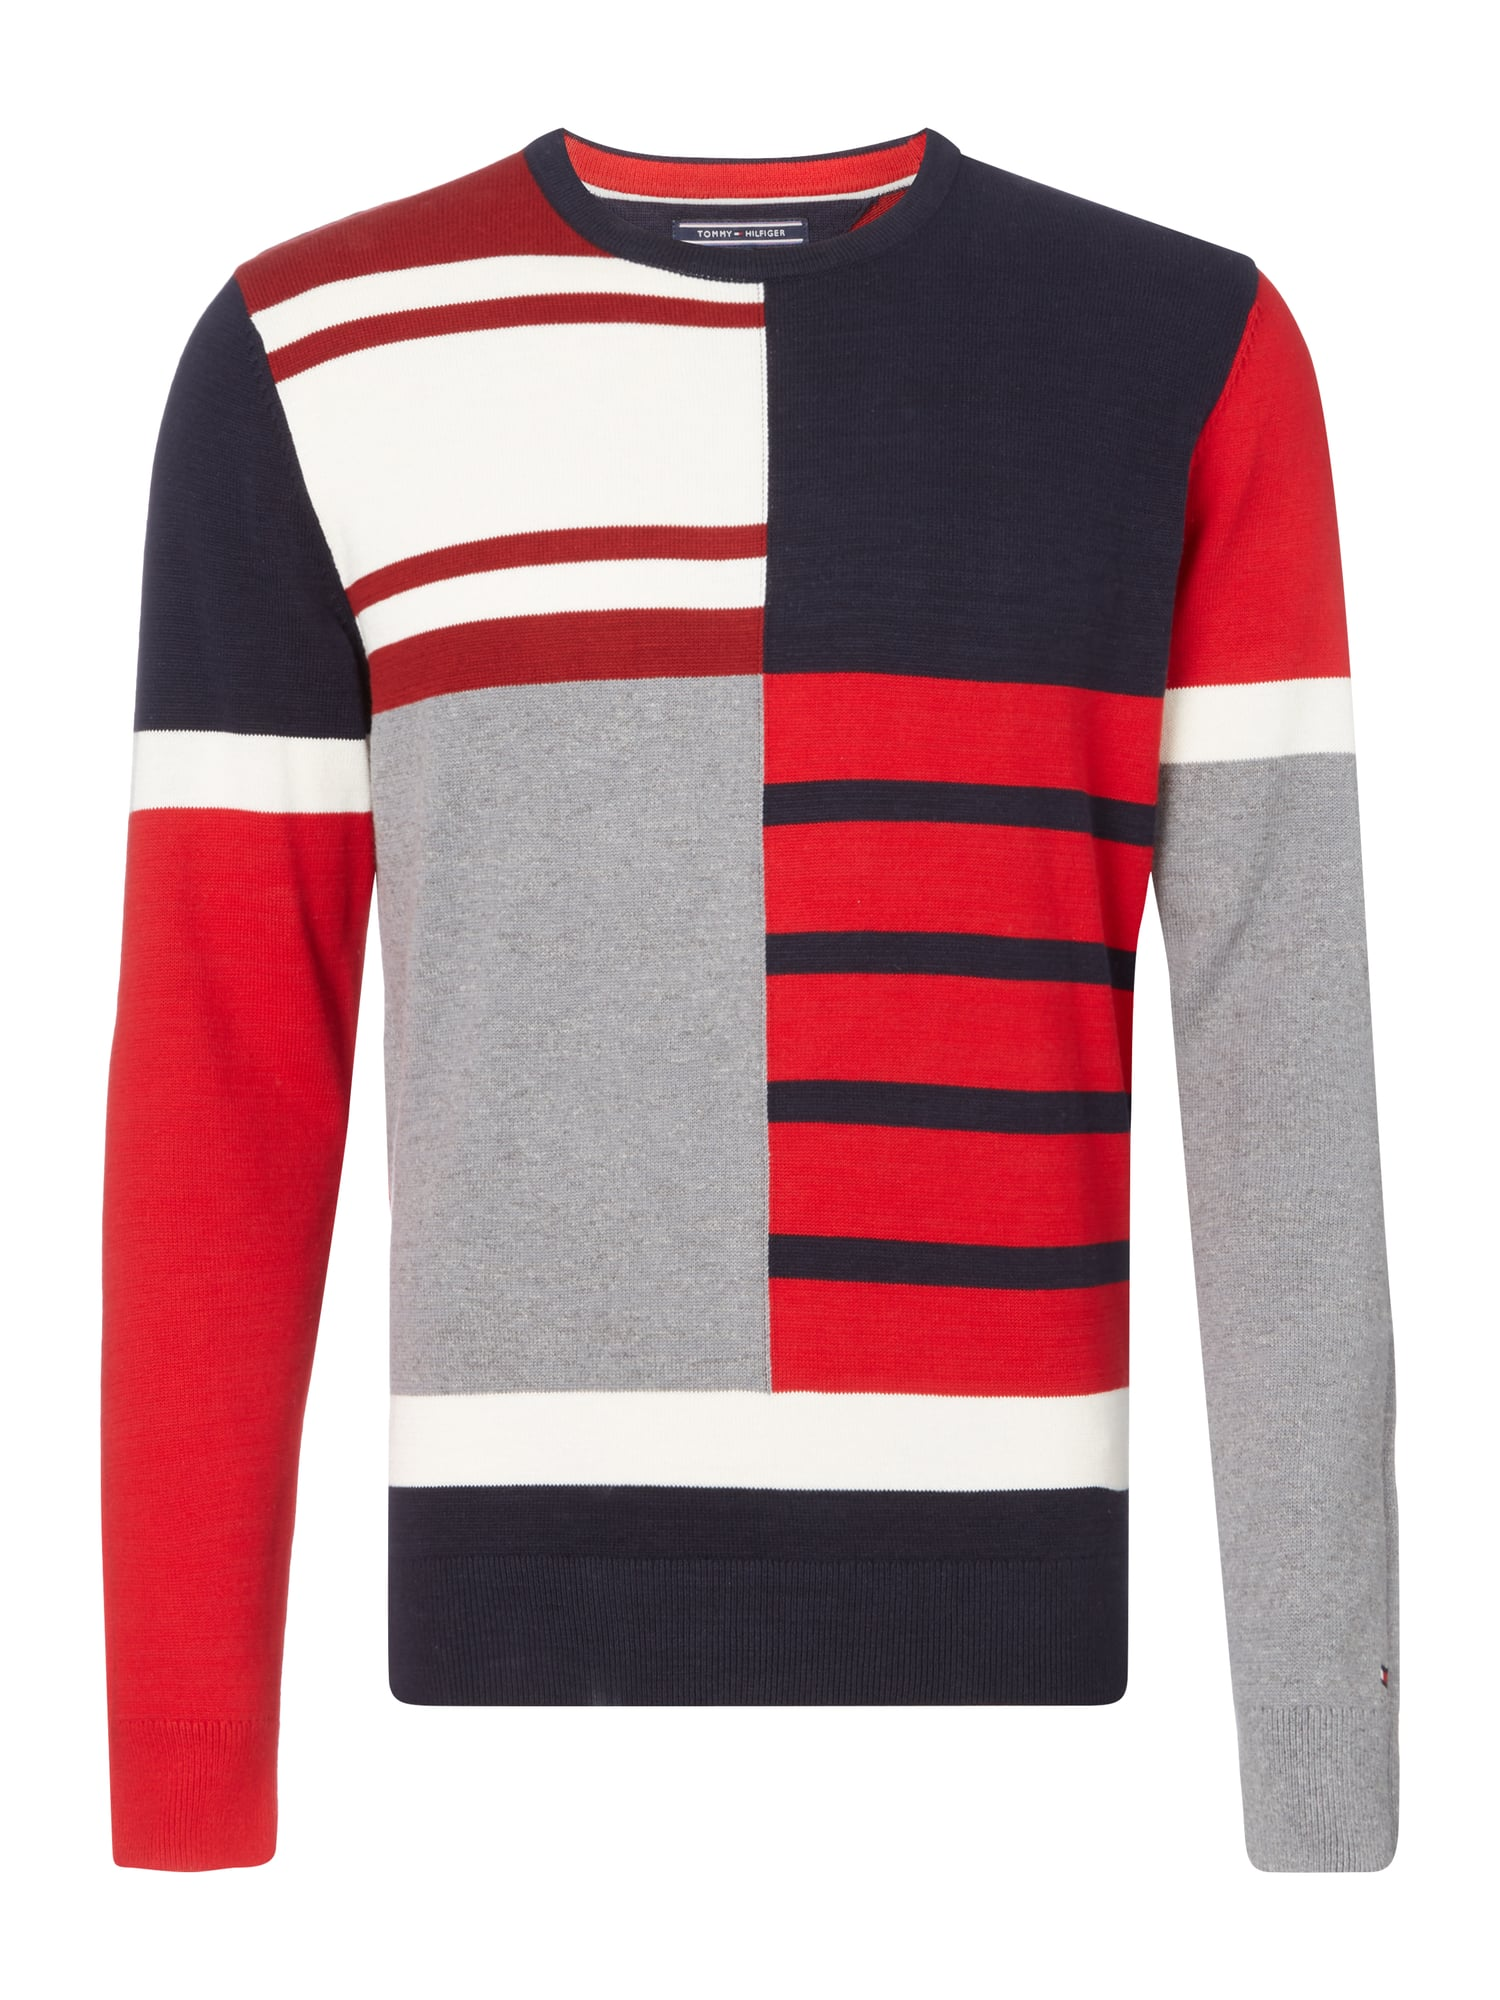 TOMMY-HILFIGER Pullover im Color-Block Look in Rot online kaufen ...